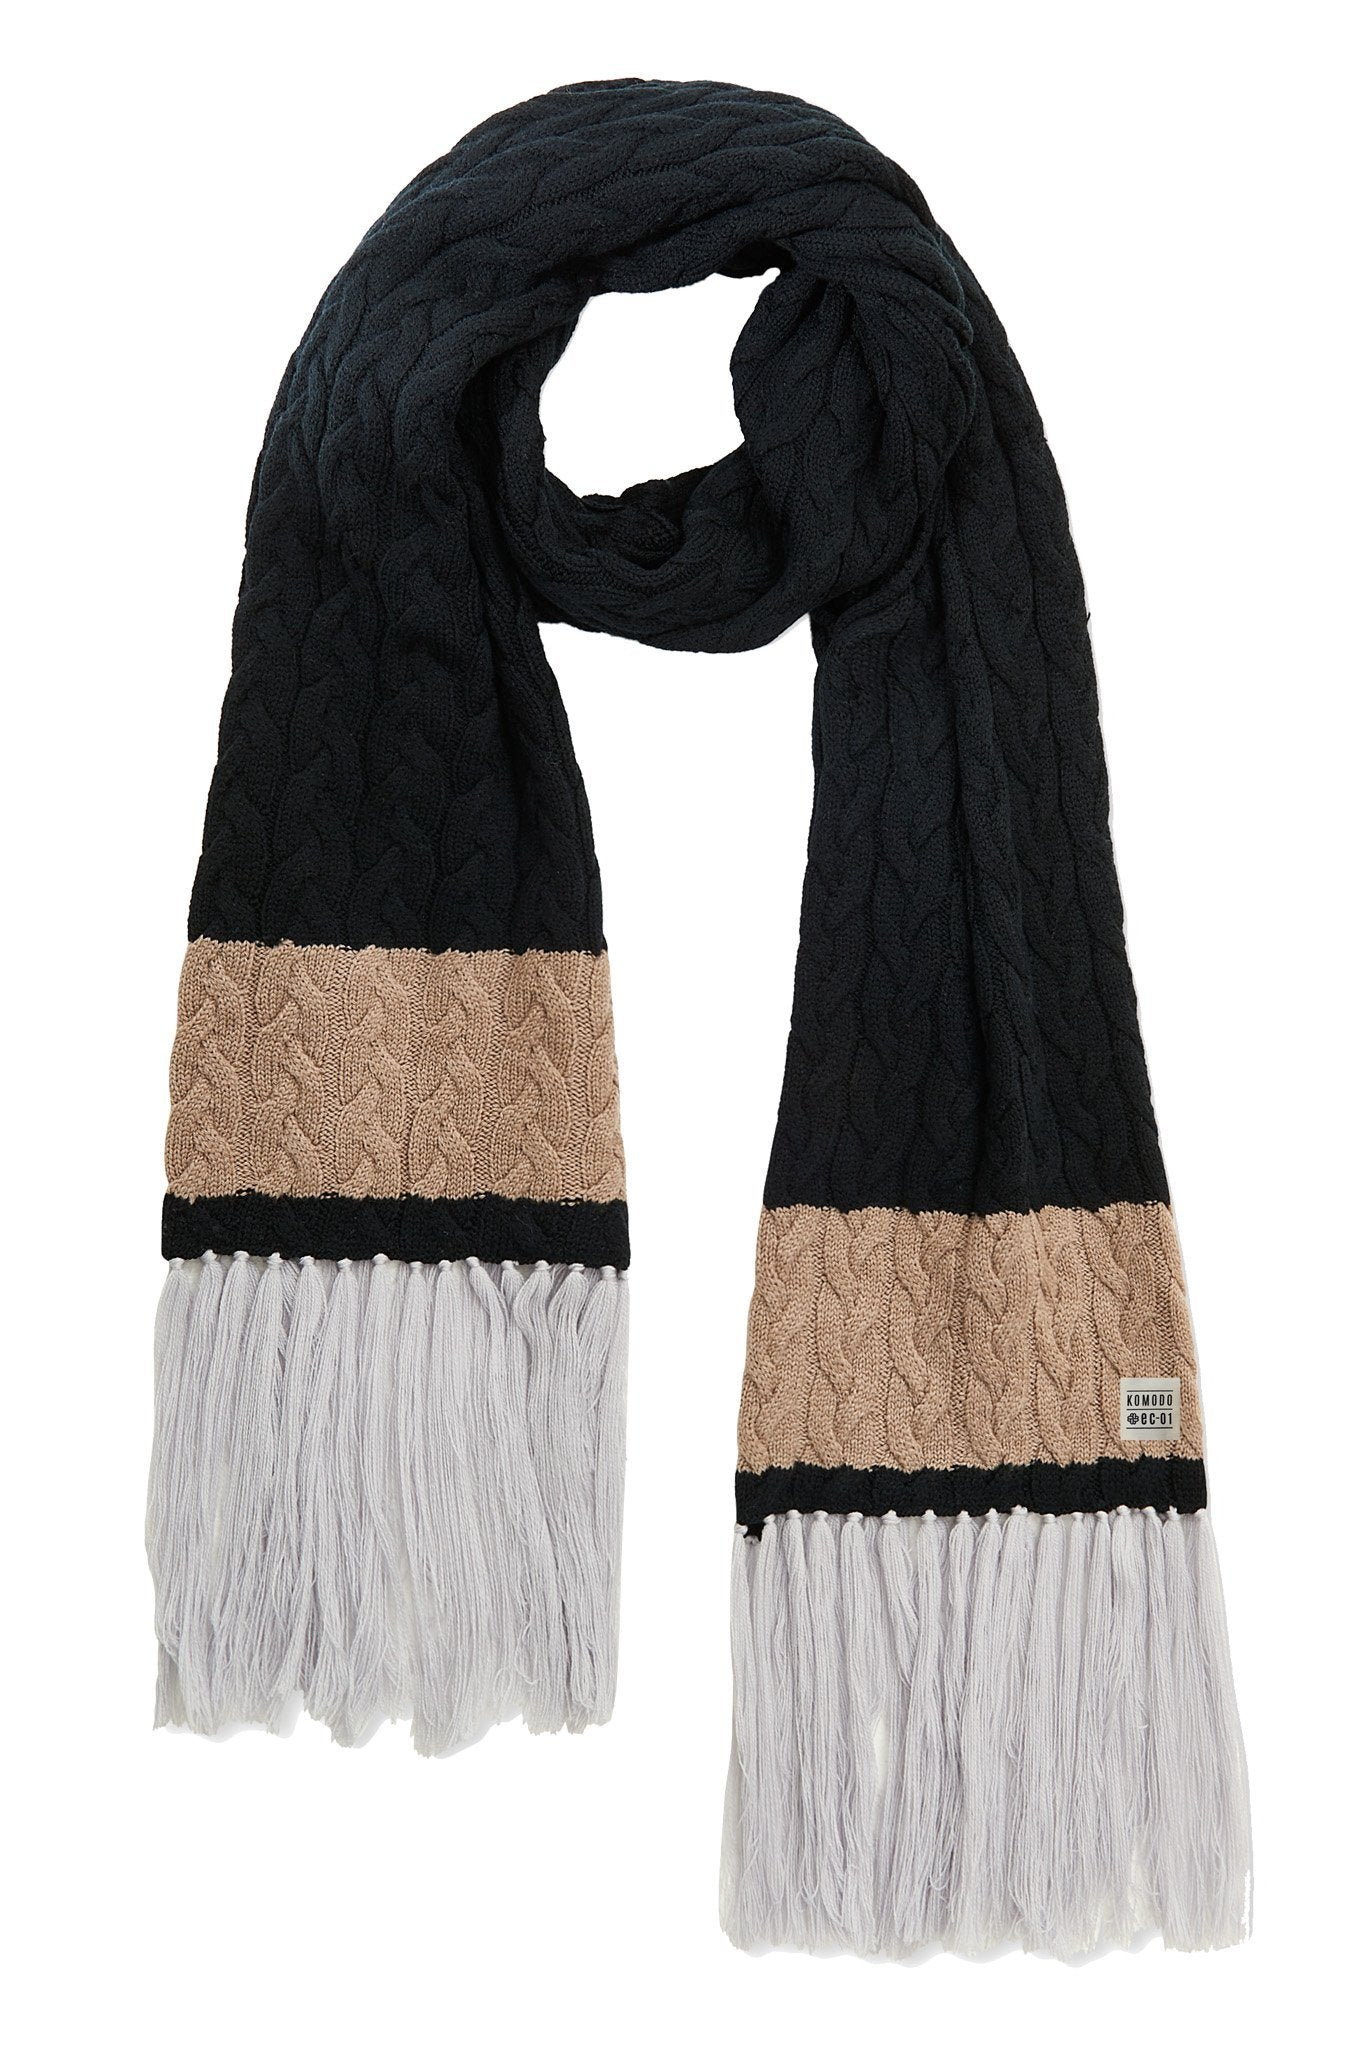 LUA Merino Wool Scarf Black - Komodo Fashion